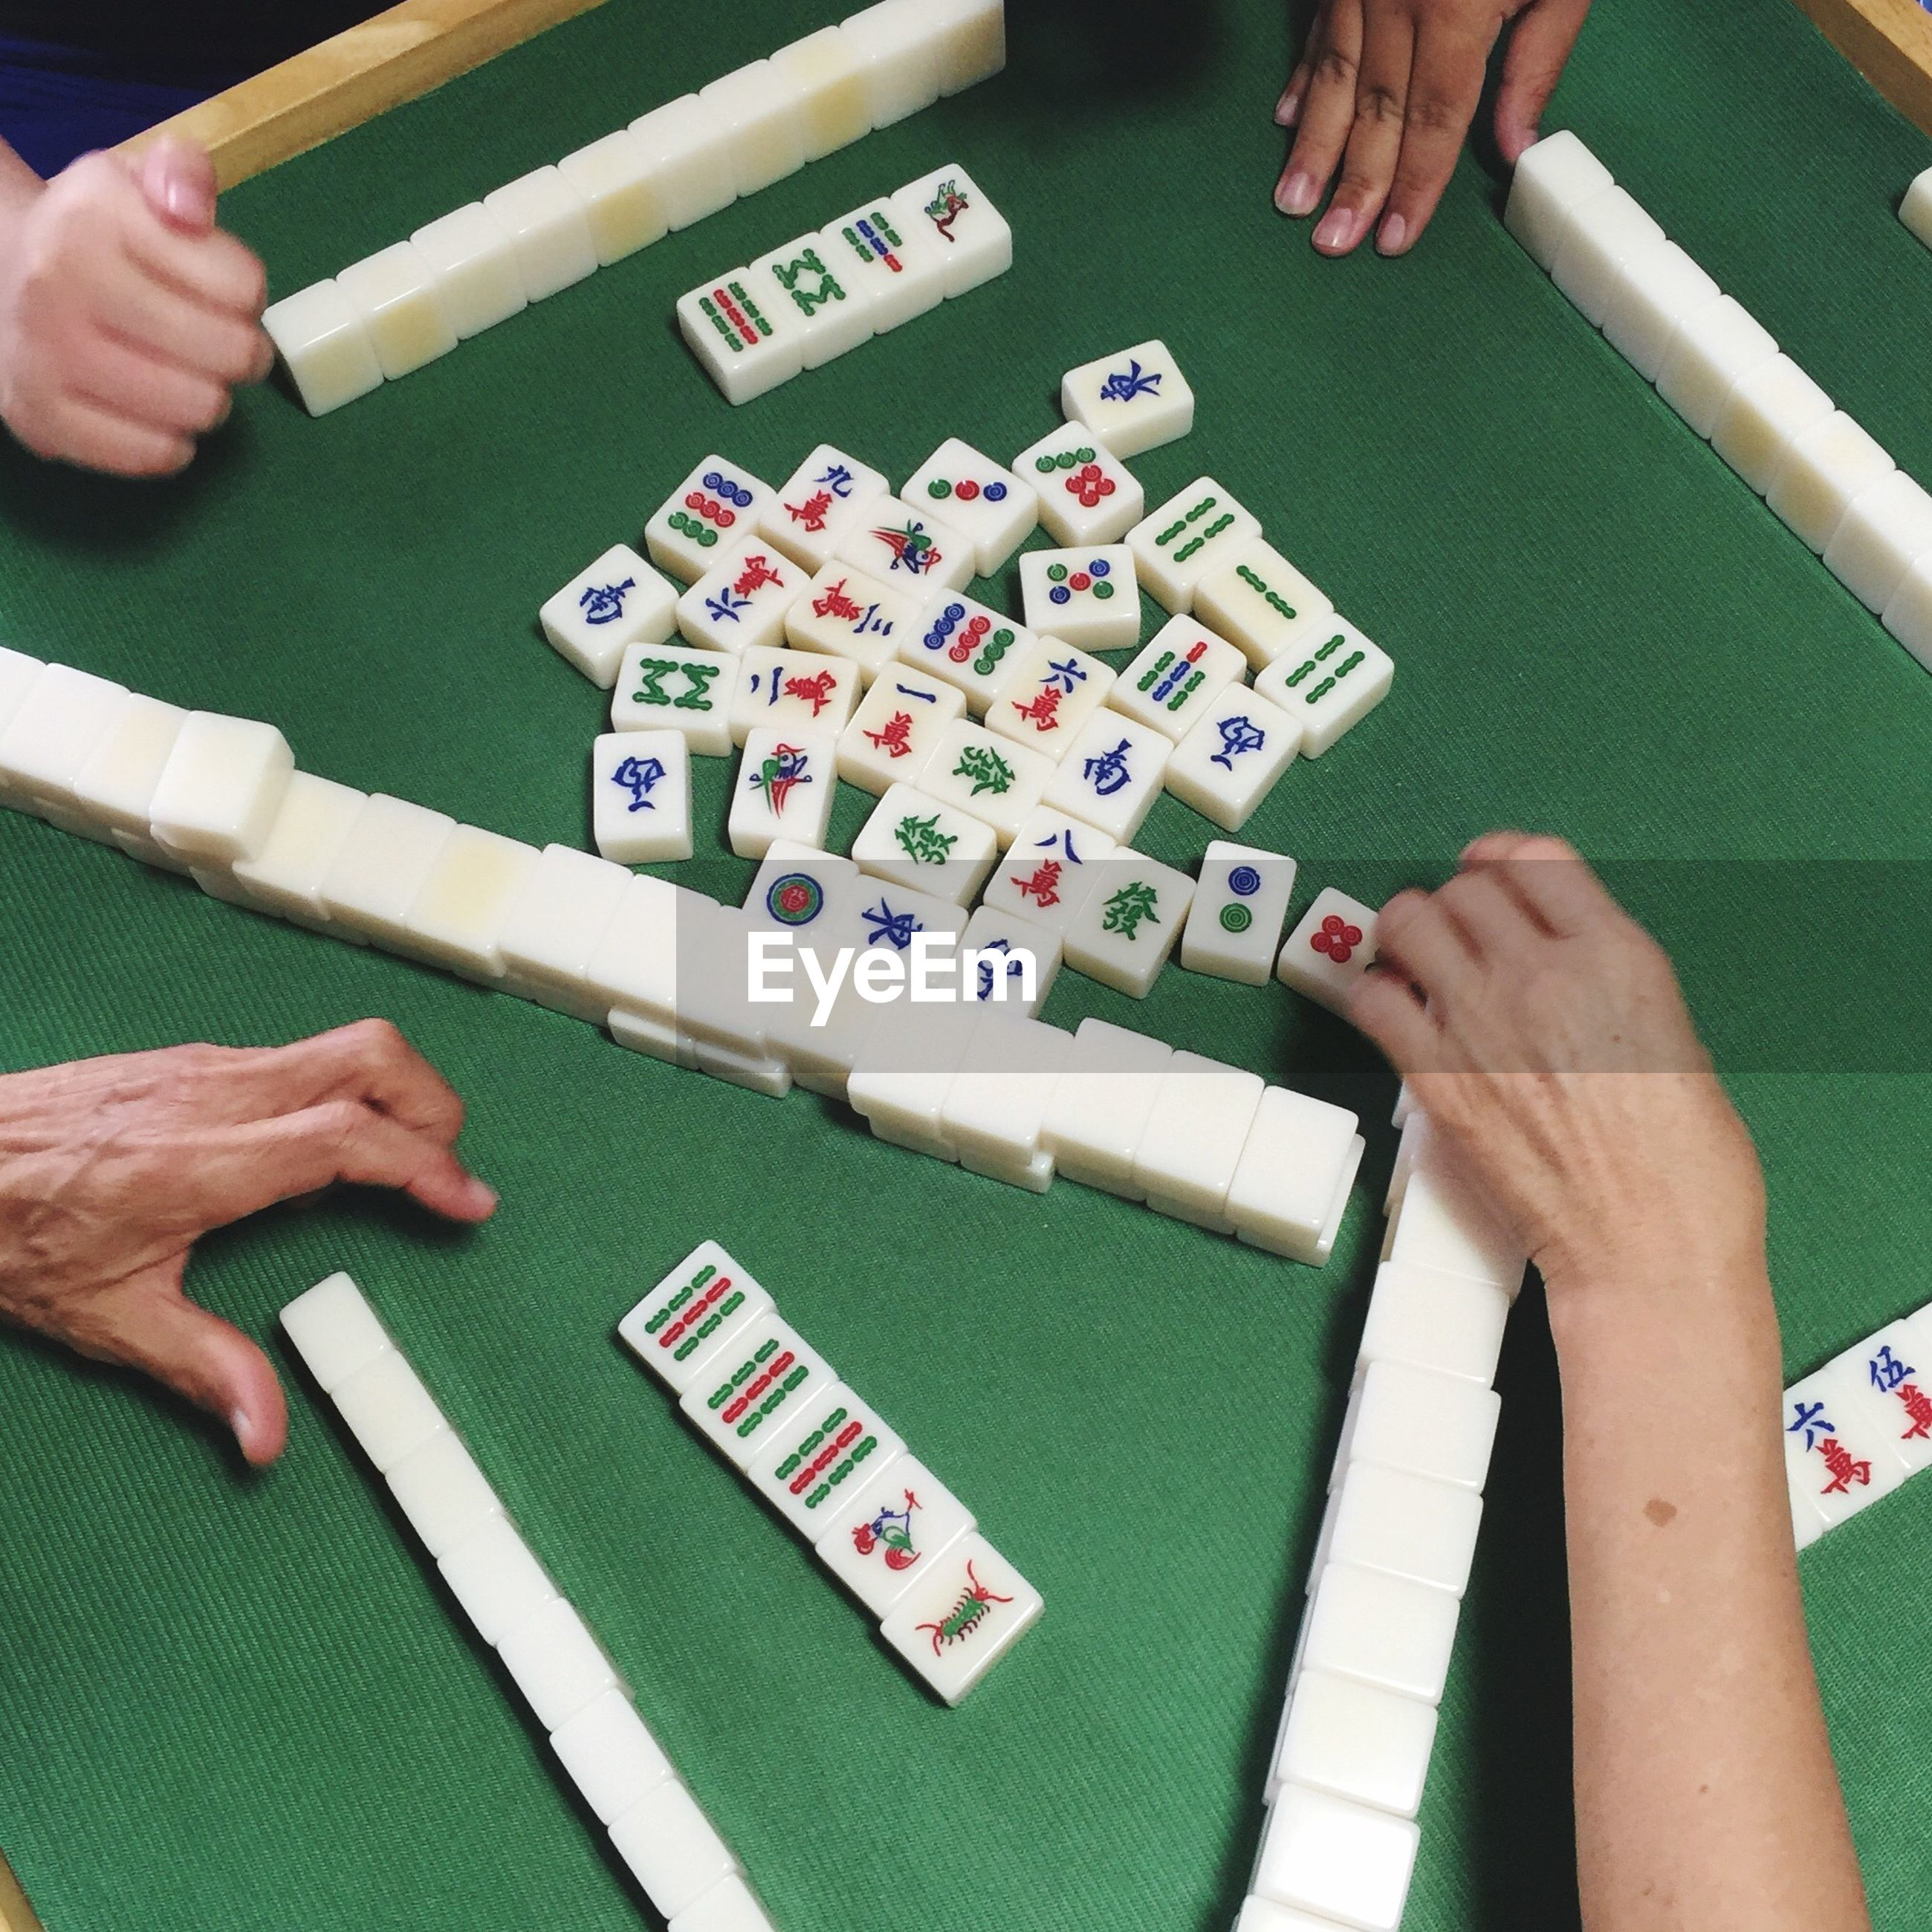 Cropped image of people playing mahjong on table